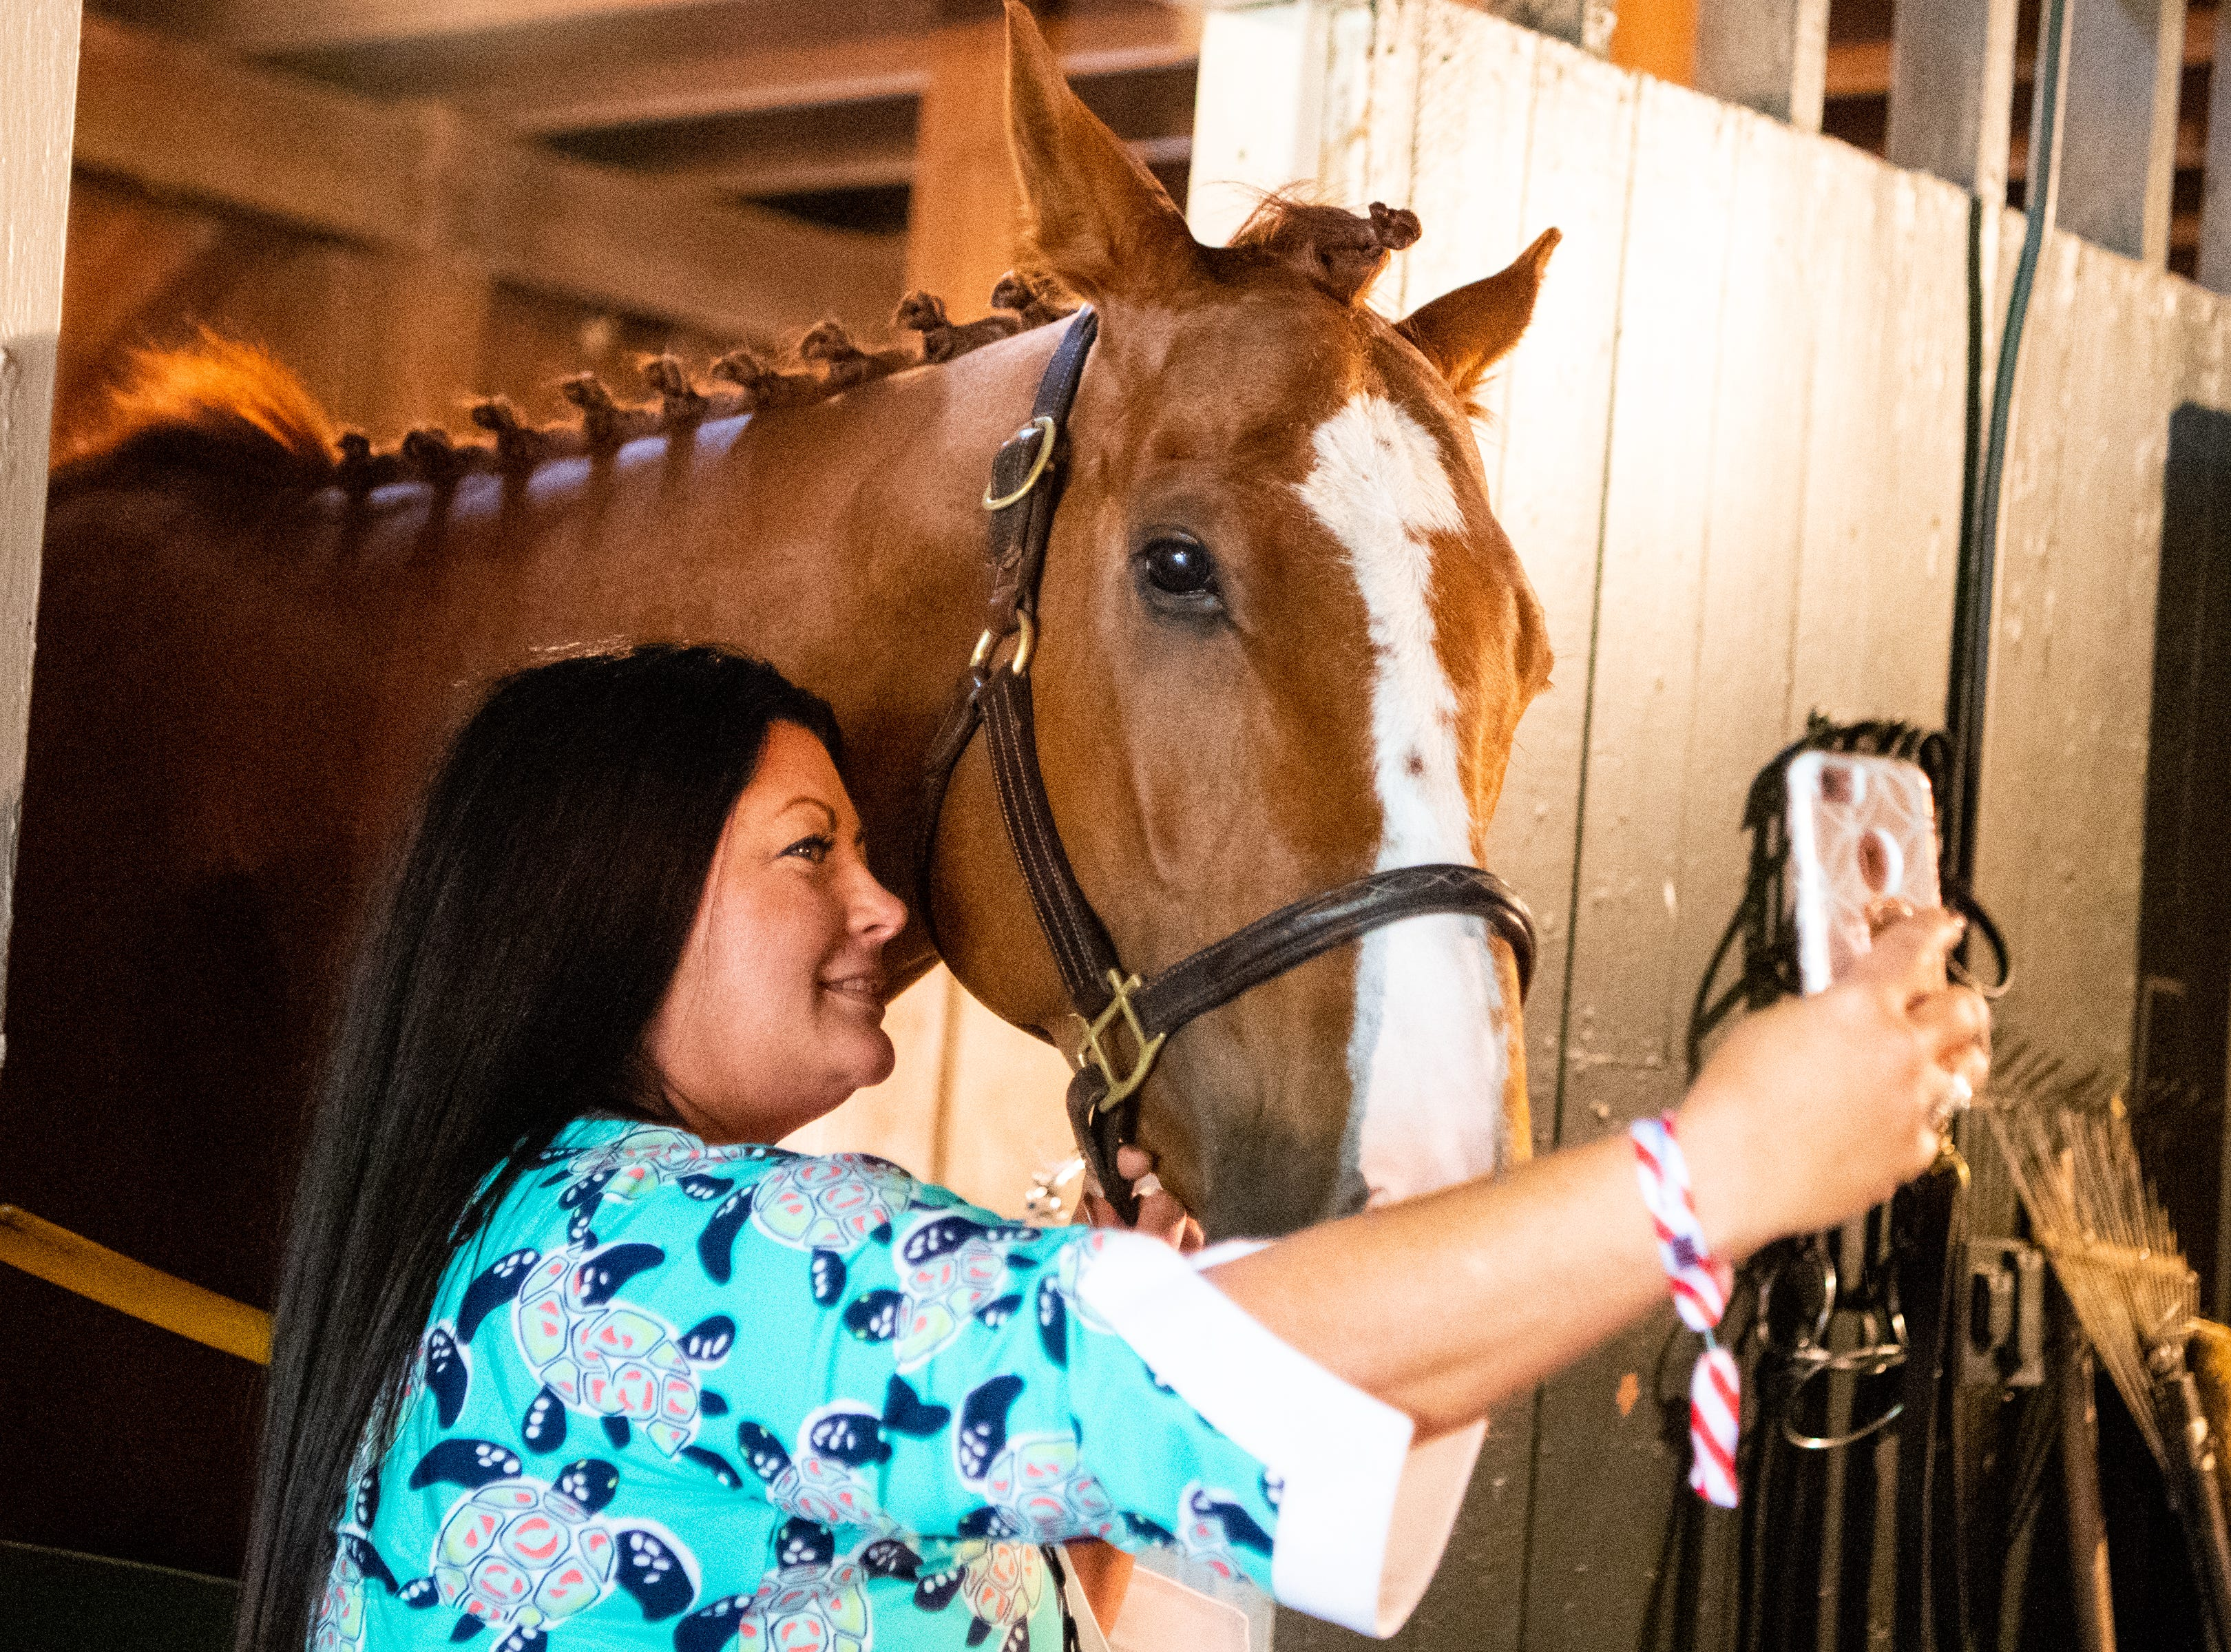 Jennifer Moody takes a selfie with a horse during the Iroquois Steeplechase at Percy Warner Park Saturday, May 11, 2019, in Nashville, Tenn.